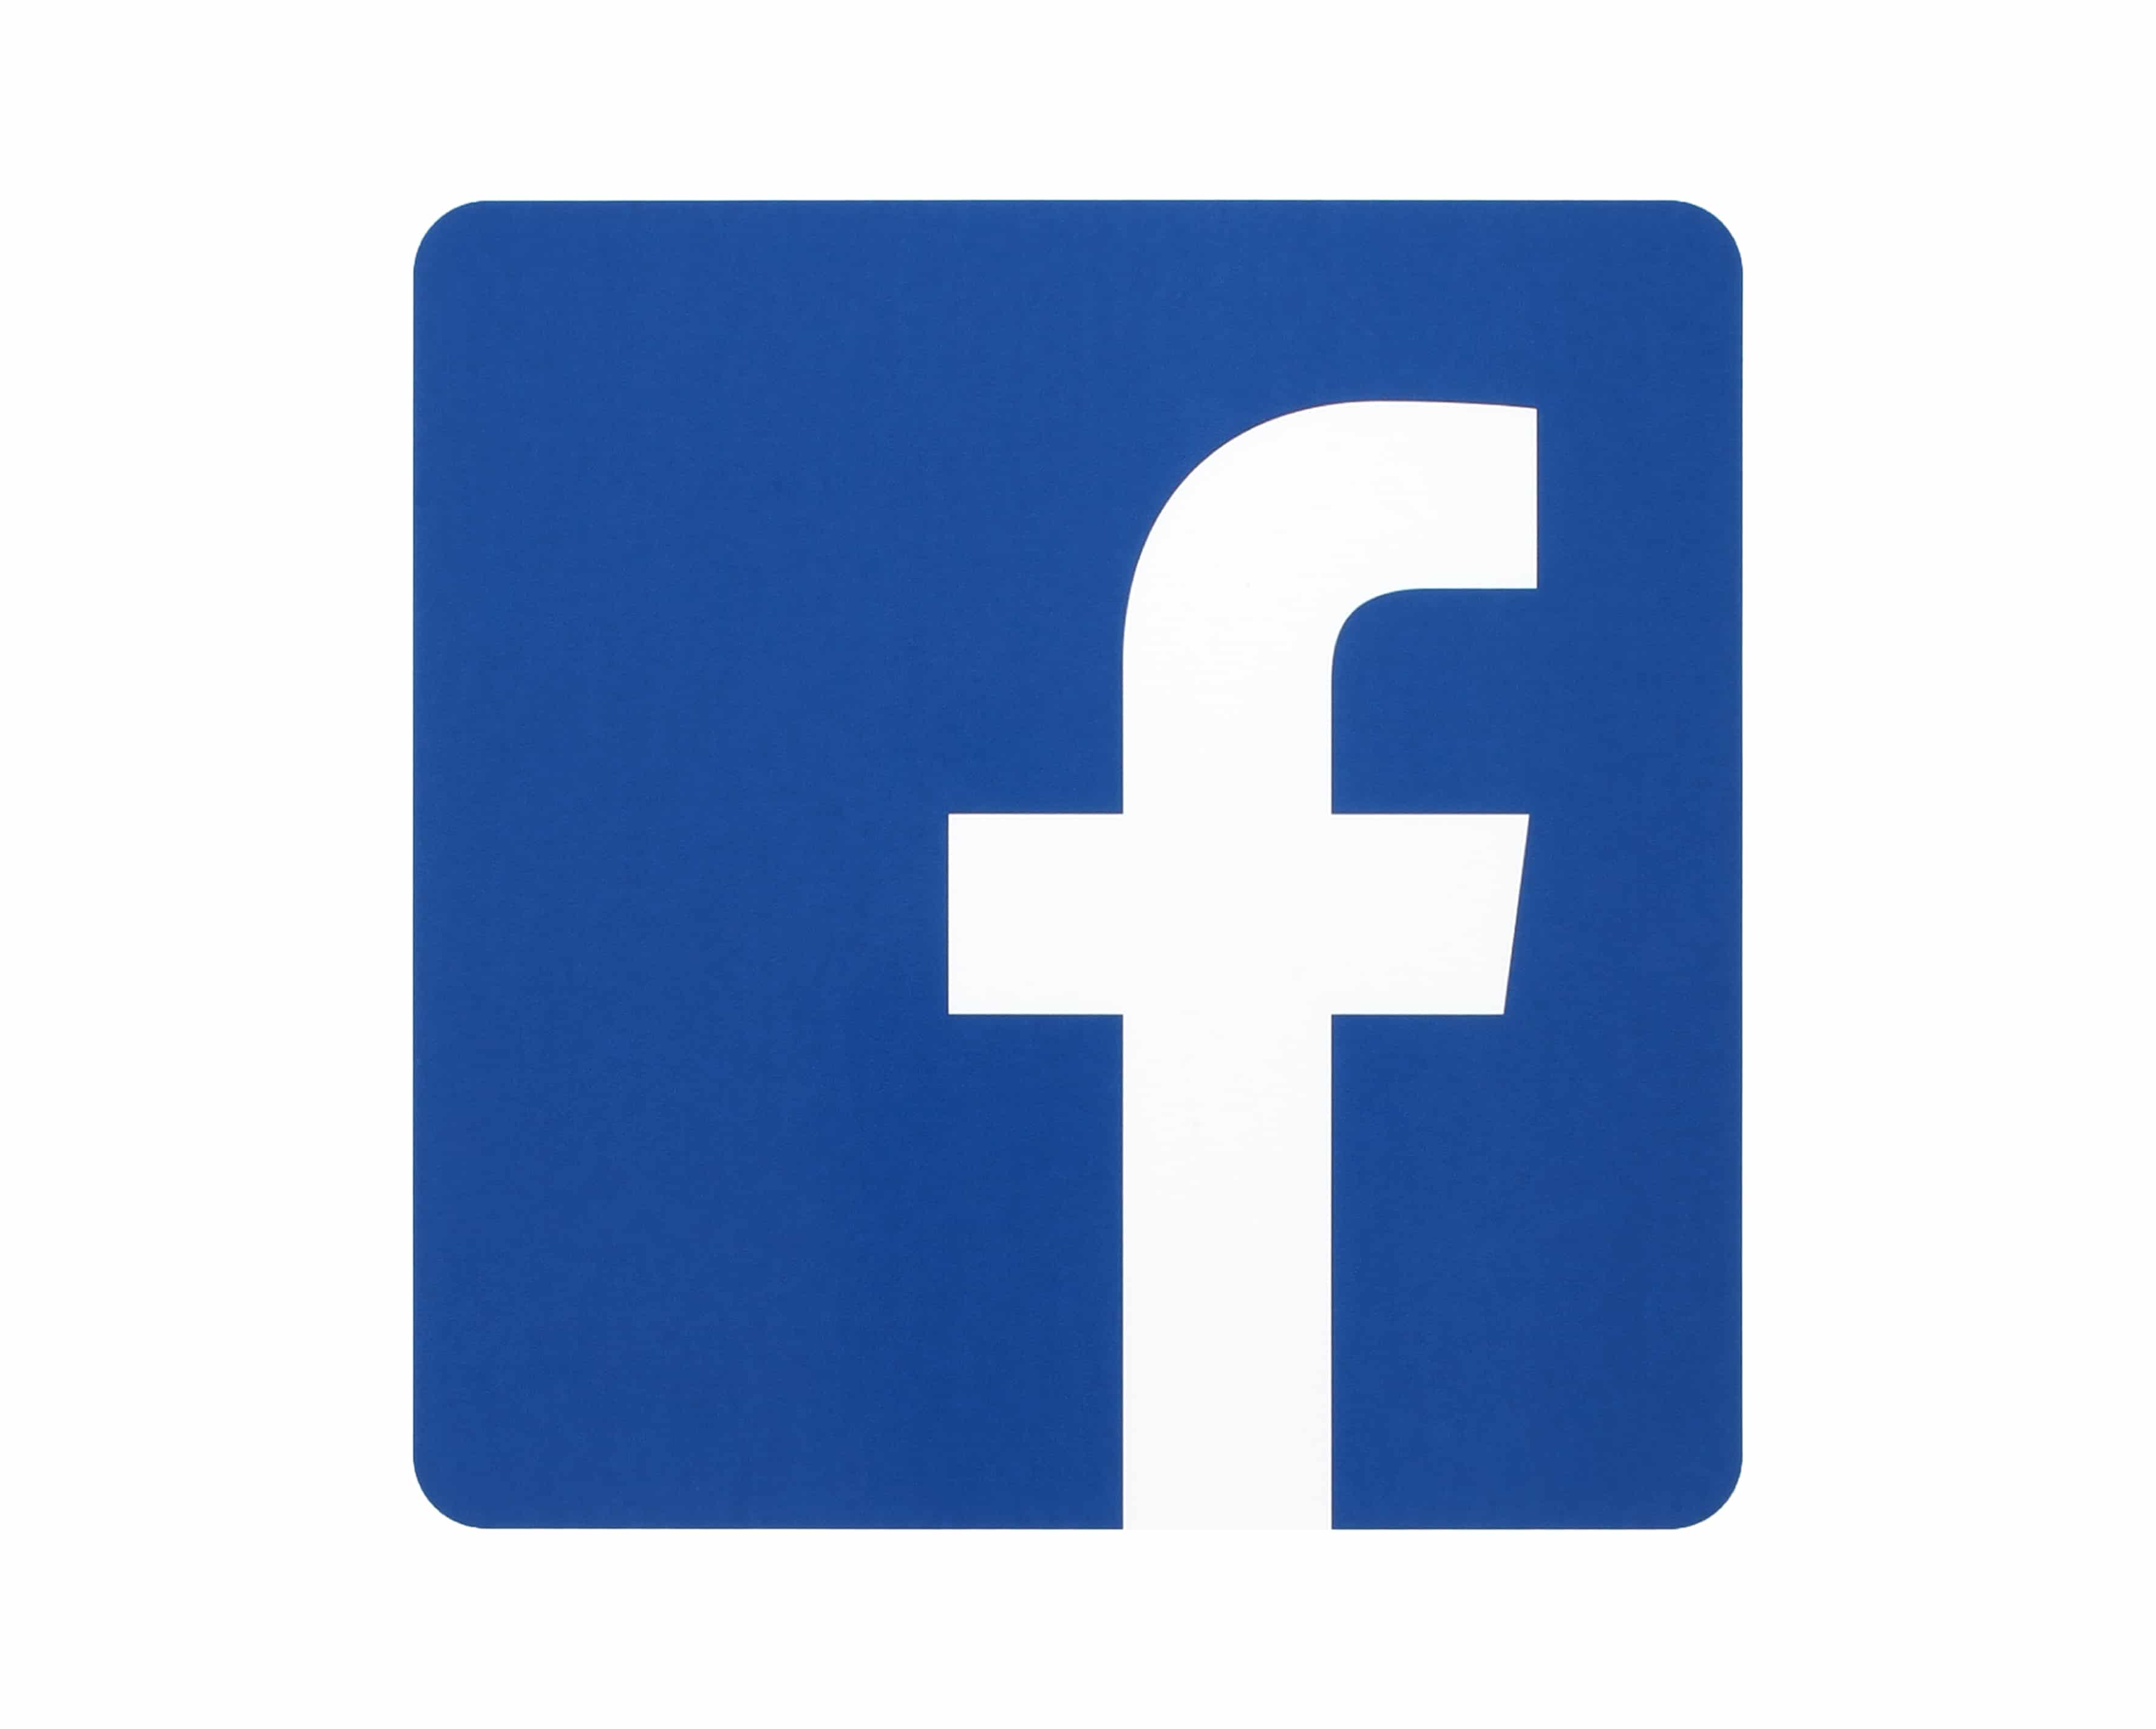 Privacy Alert: Facebook looks to sell excess fiber capacity as a wholesaler